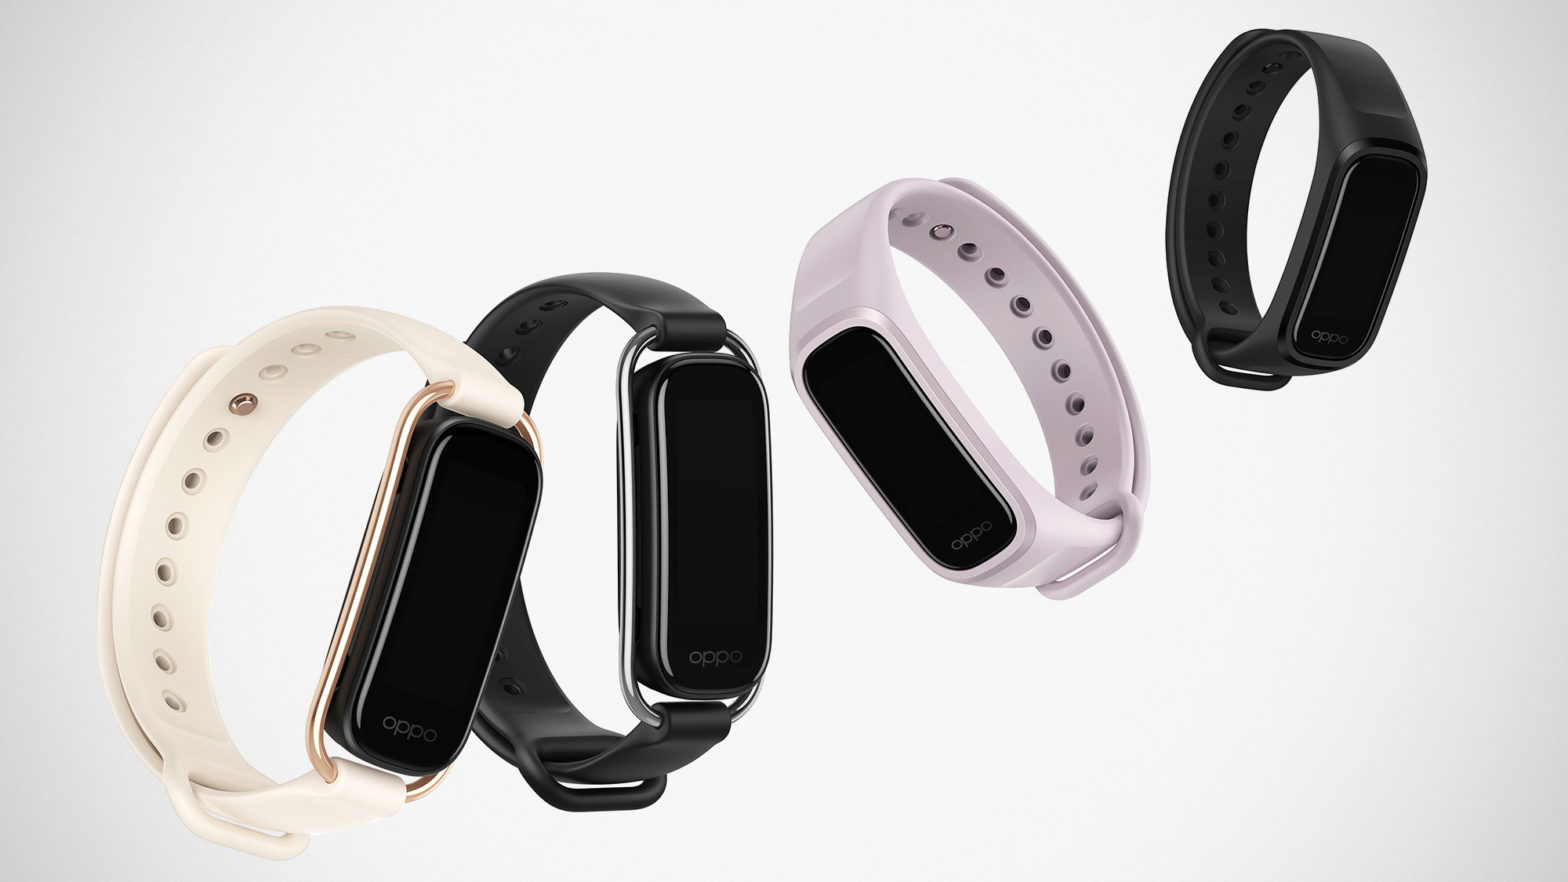 Oppo Band Fitness Tracker